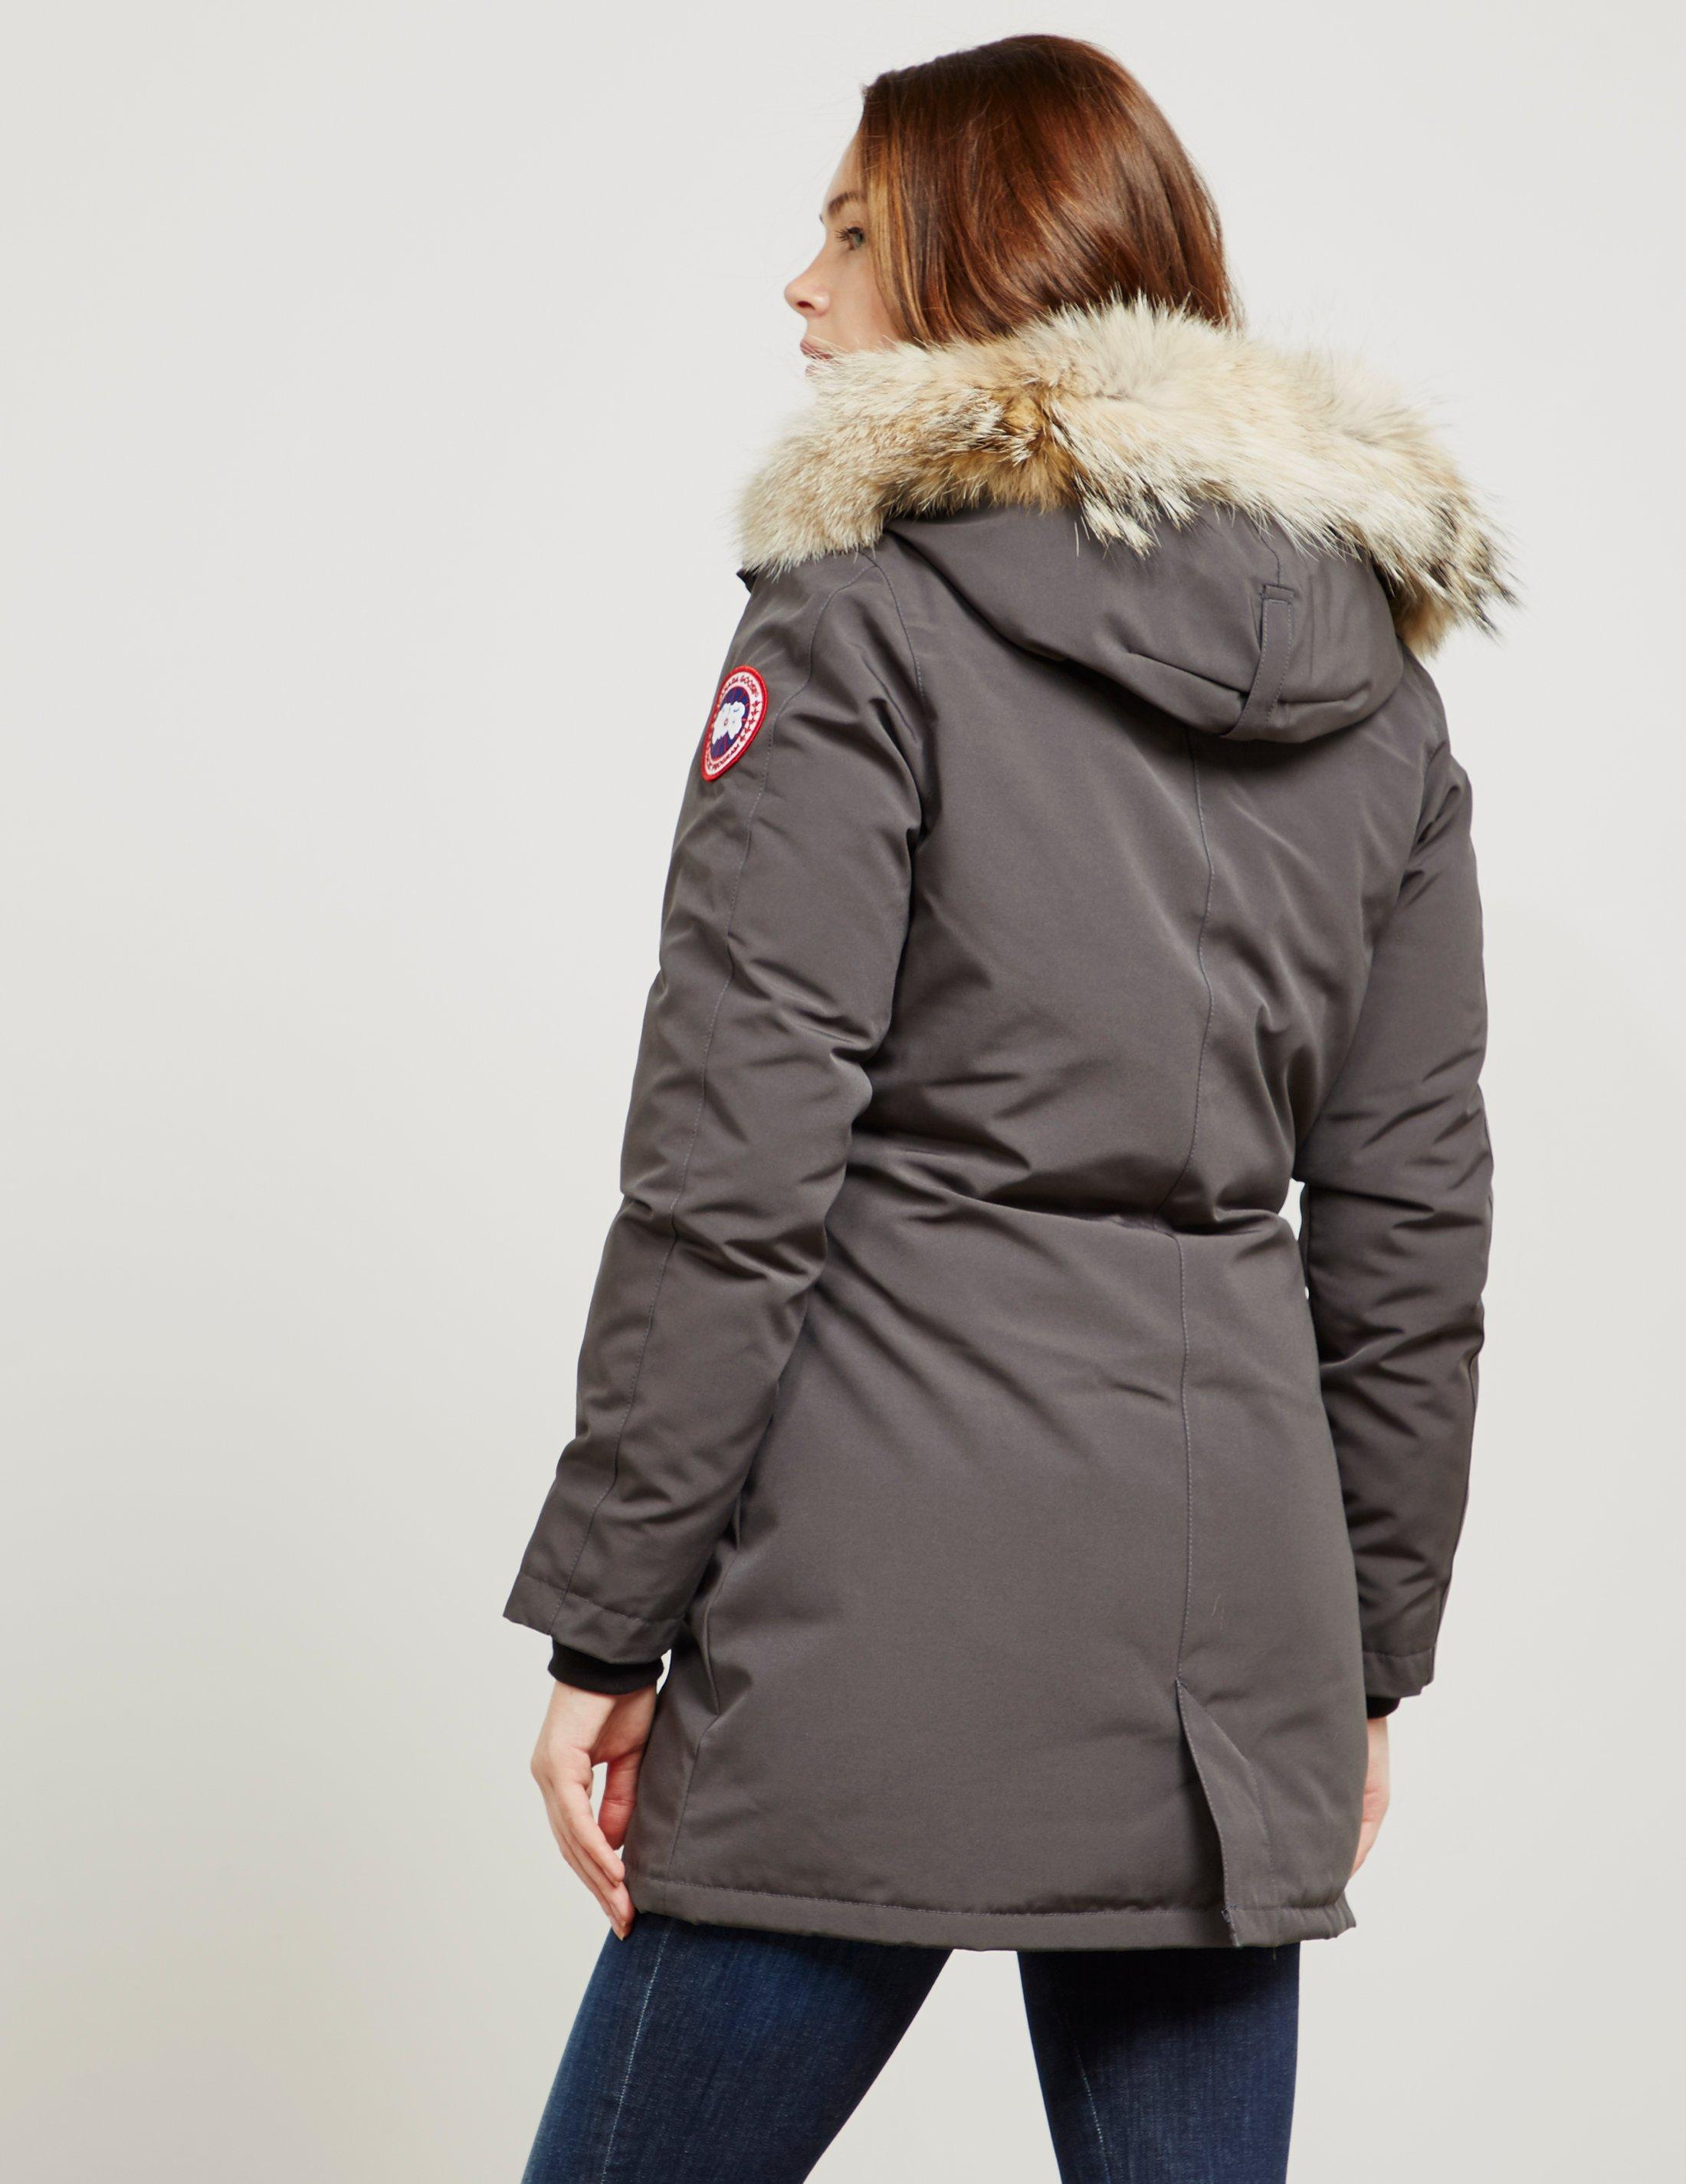 lyst canada goose victoria parka jacket in gray save rh lyst com